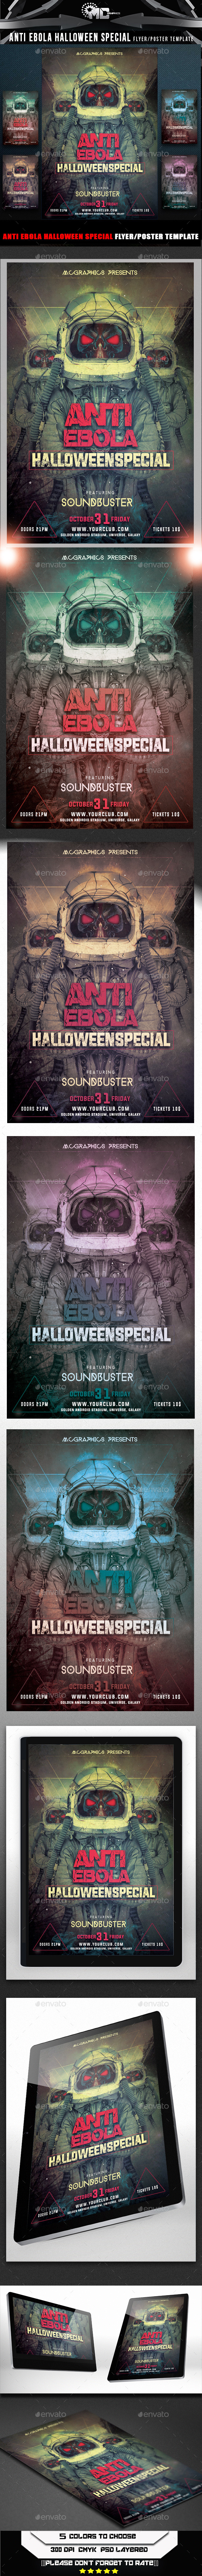 Anti Ebola Halloween Special Flyer Template - Flyers Print Templates